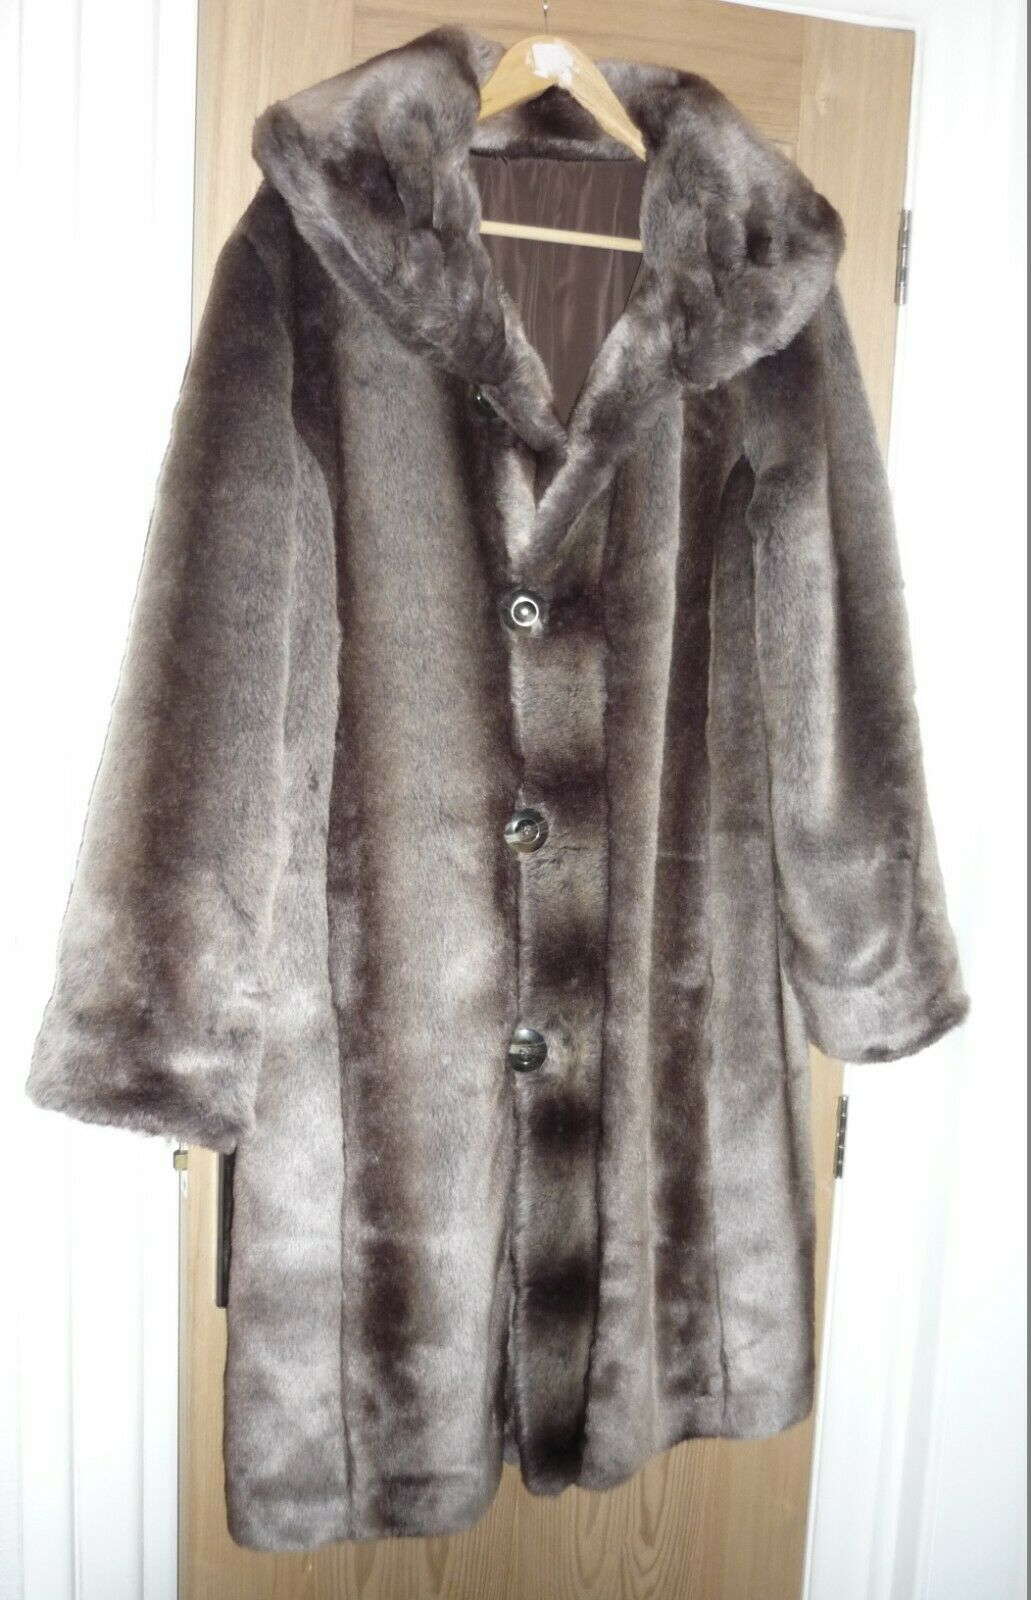 Faux fur Long coat Size 16 Large BRAND NEW no tags rrp £199 XMAS GIFTS FOR HER